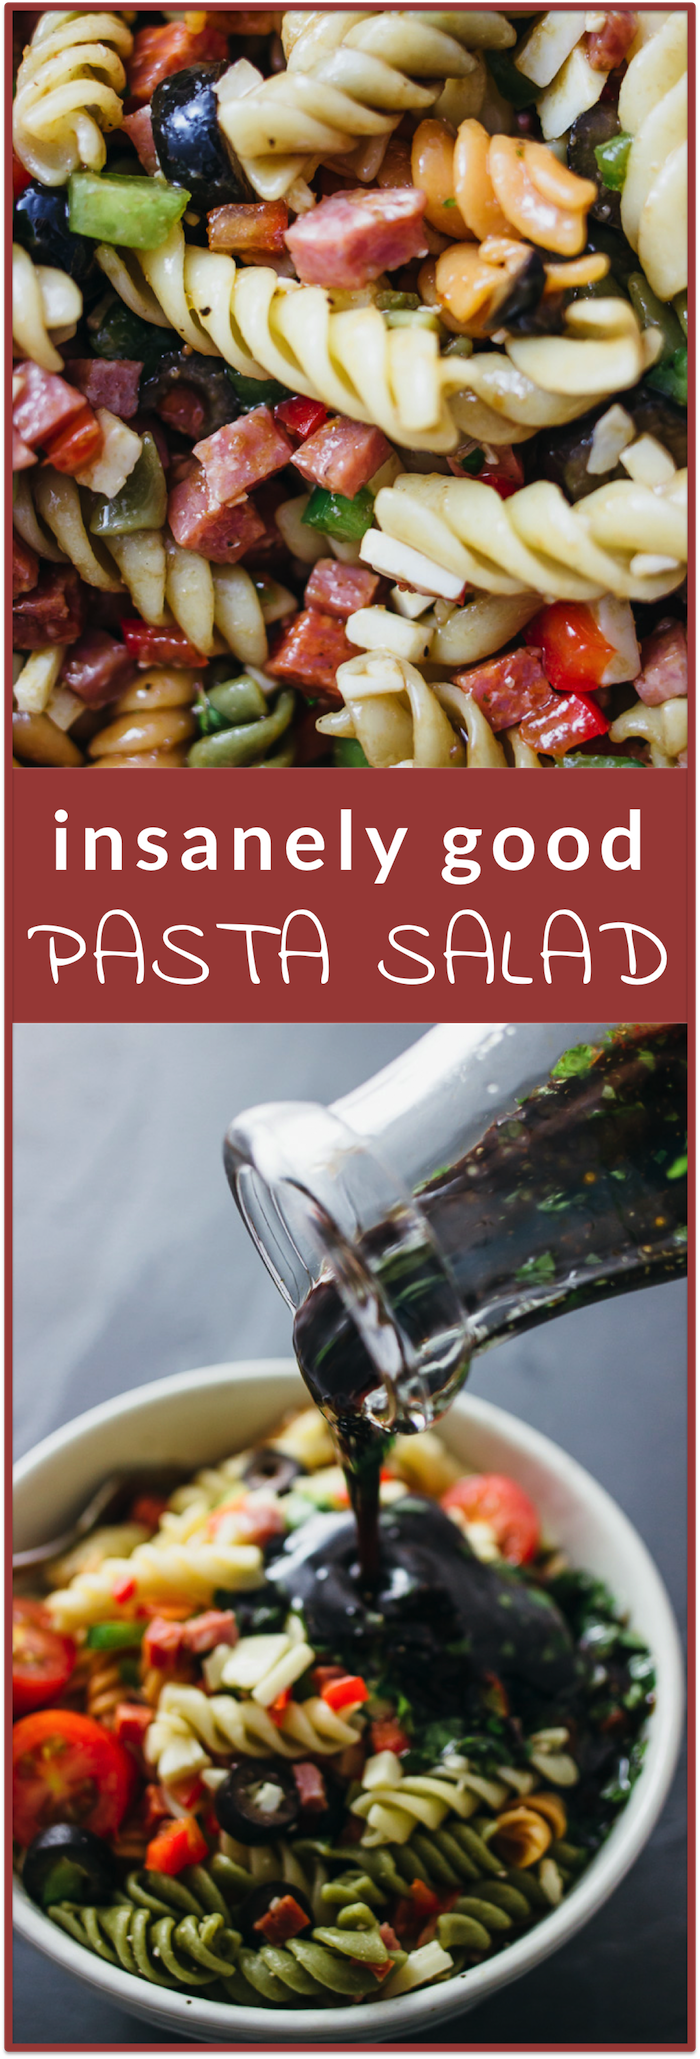 insanely good pasta salad recipe | easy appetizer side dish recipe | balsamic vinegar dressing, pasta salad with italian dressing, healthy, tortellini, creamy, easy, greek, ranch, cold, summer, blt, caprese, pasta salad recipes